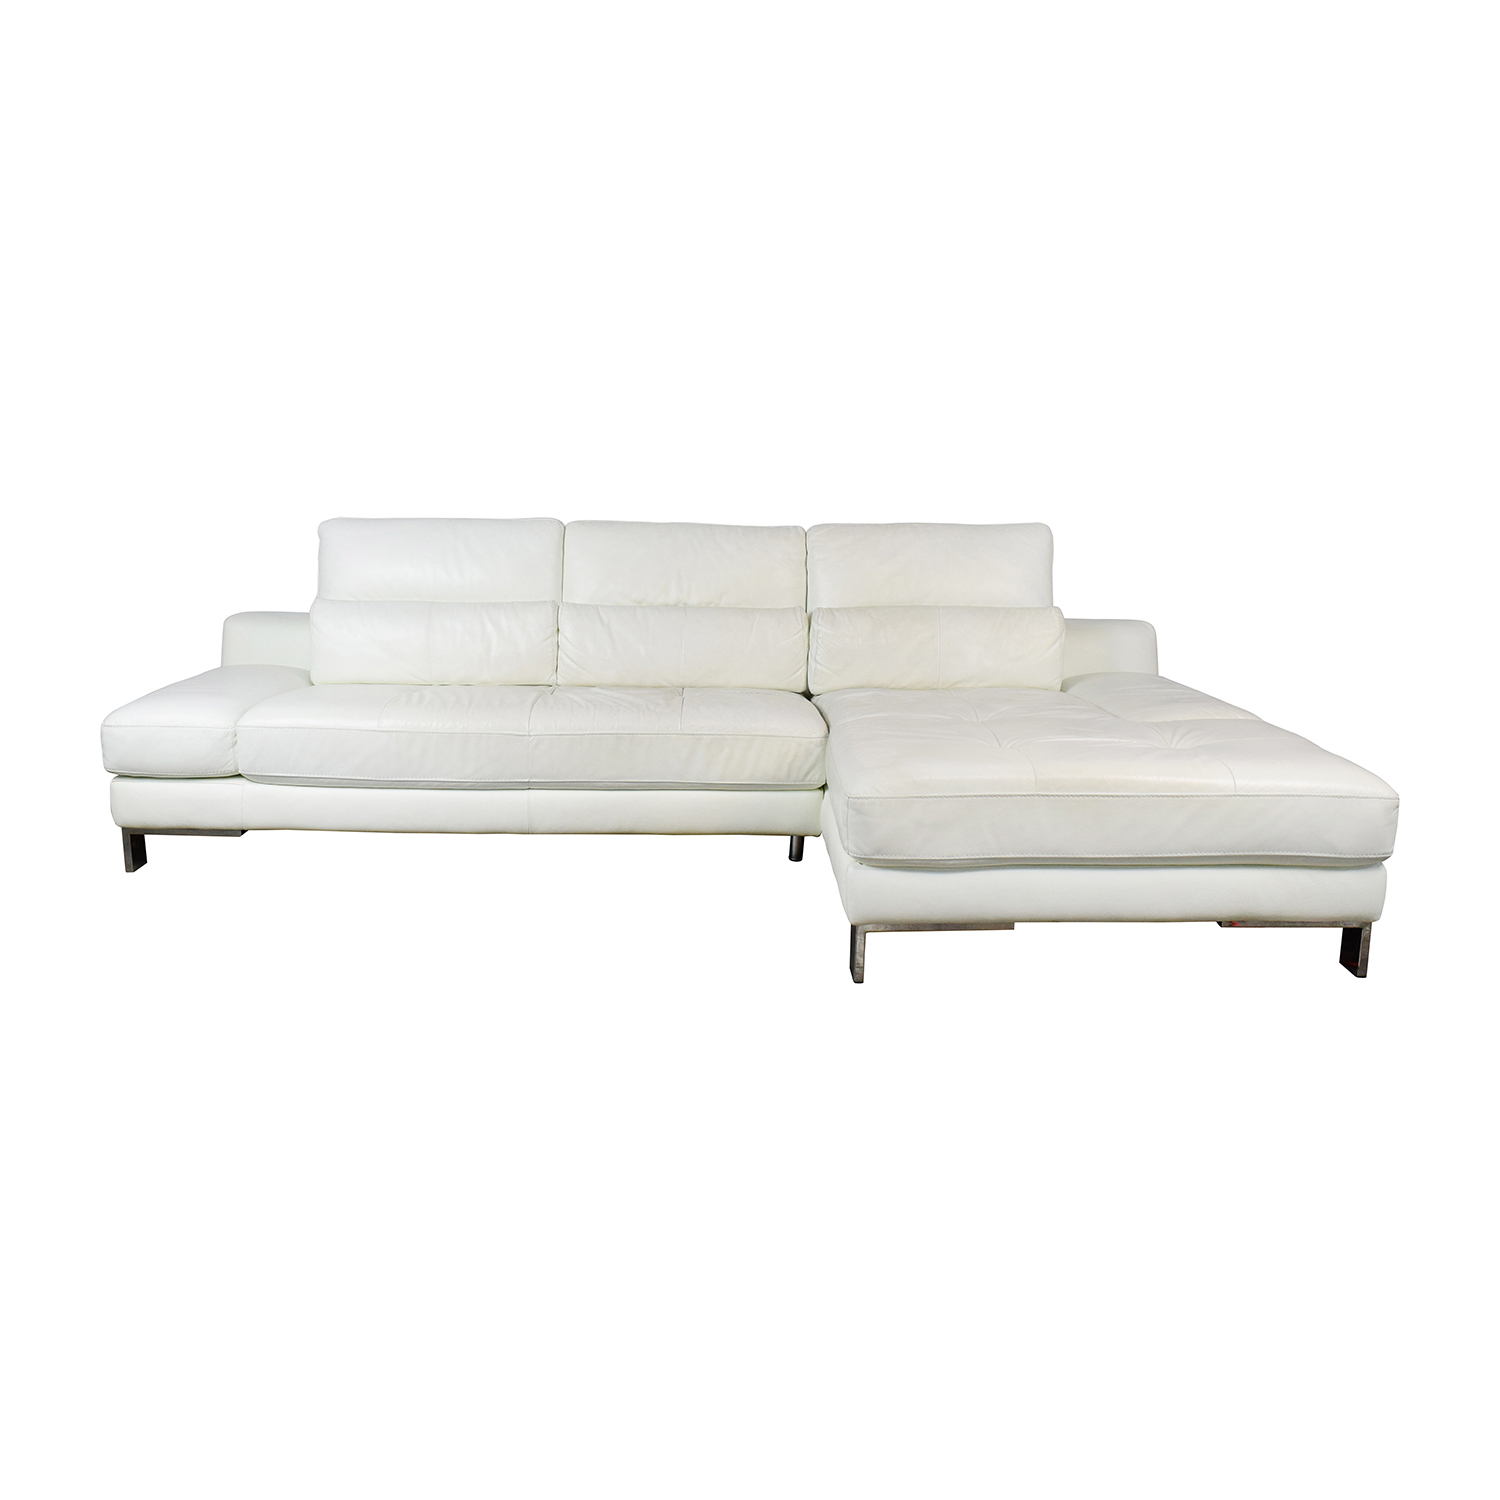 72% OFF - Mobilia Mobilia Canada Funktion White Leather Sectional / Sofas